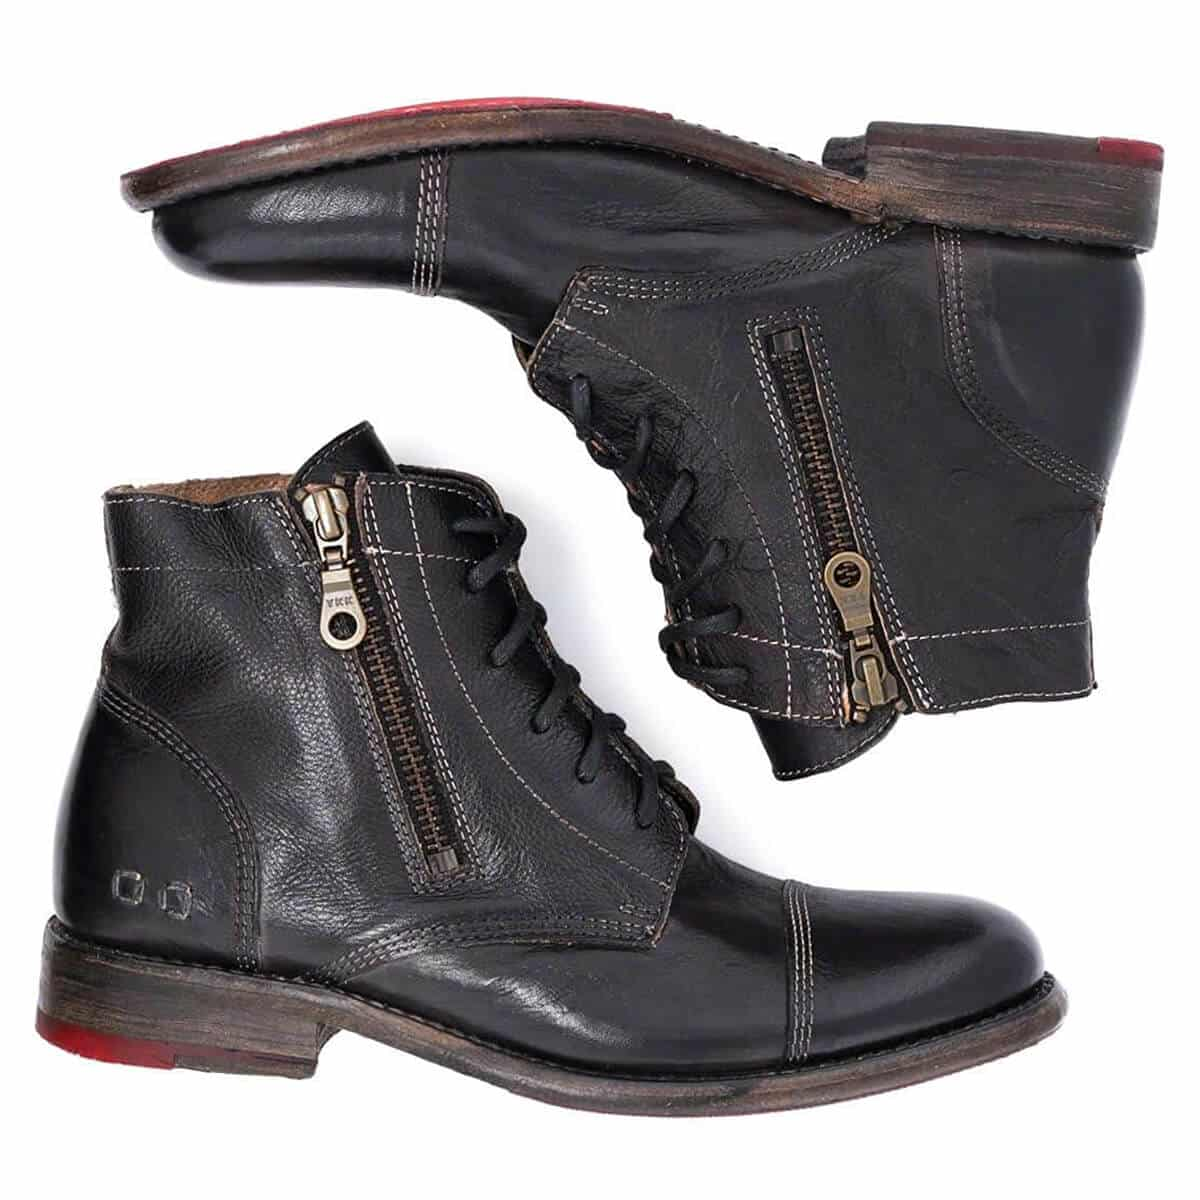 Bed|Stu Bonnie Women's Distressed Leather Lace Up Boot